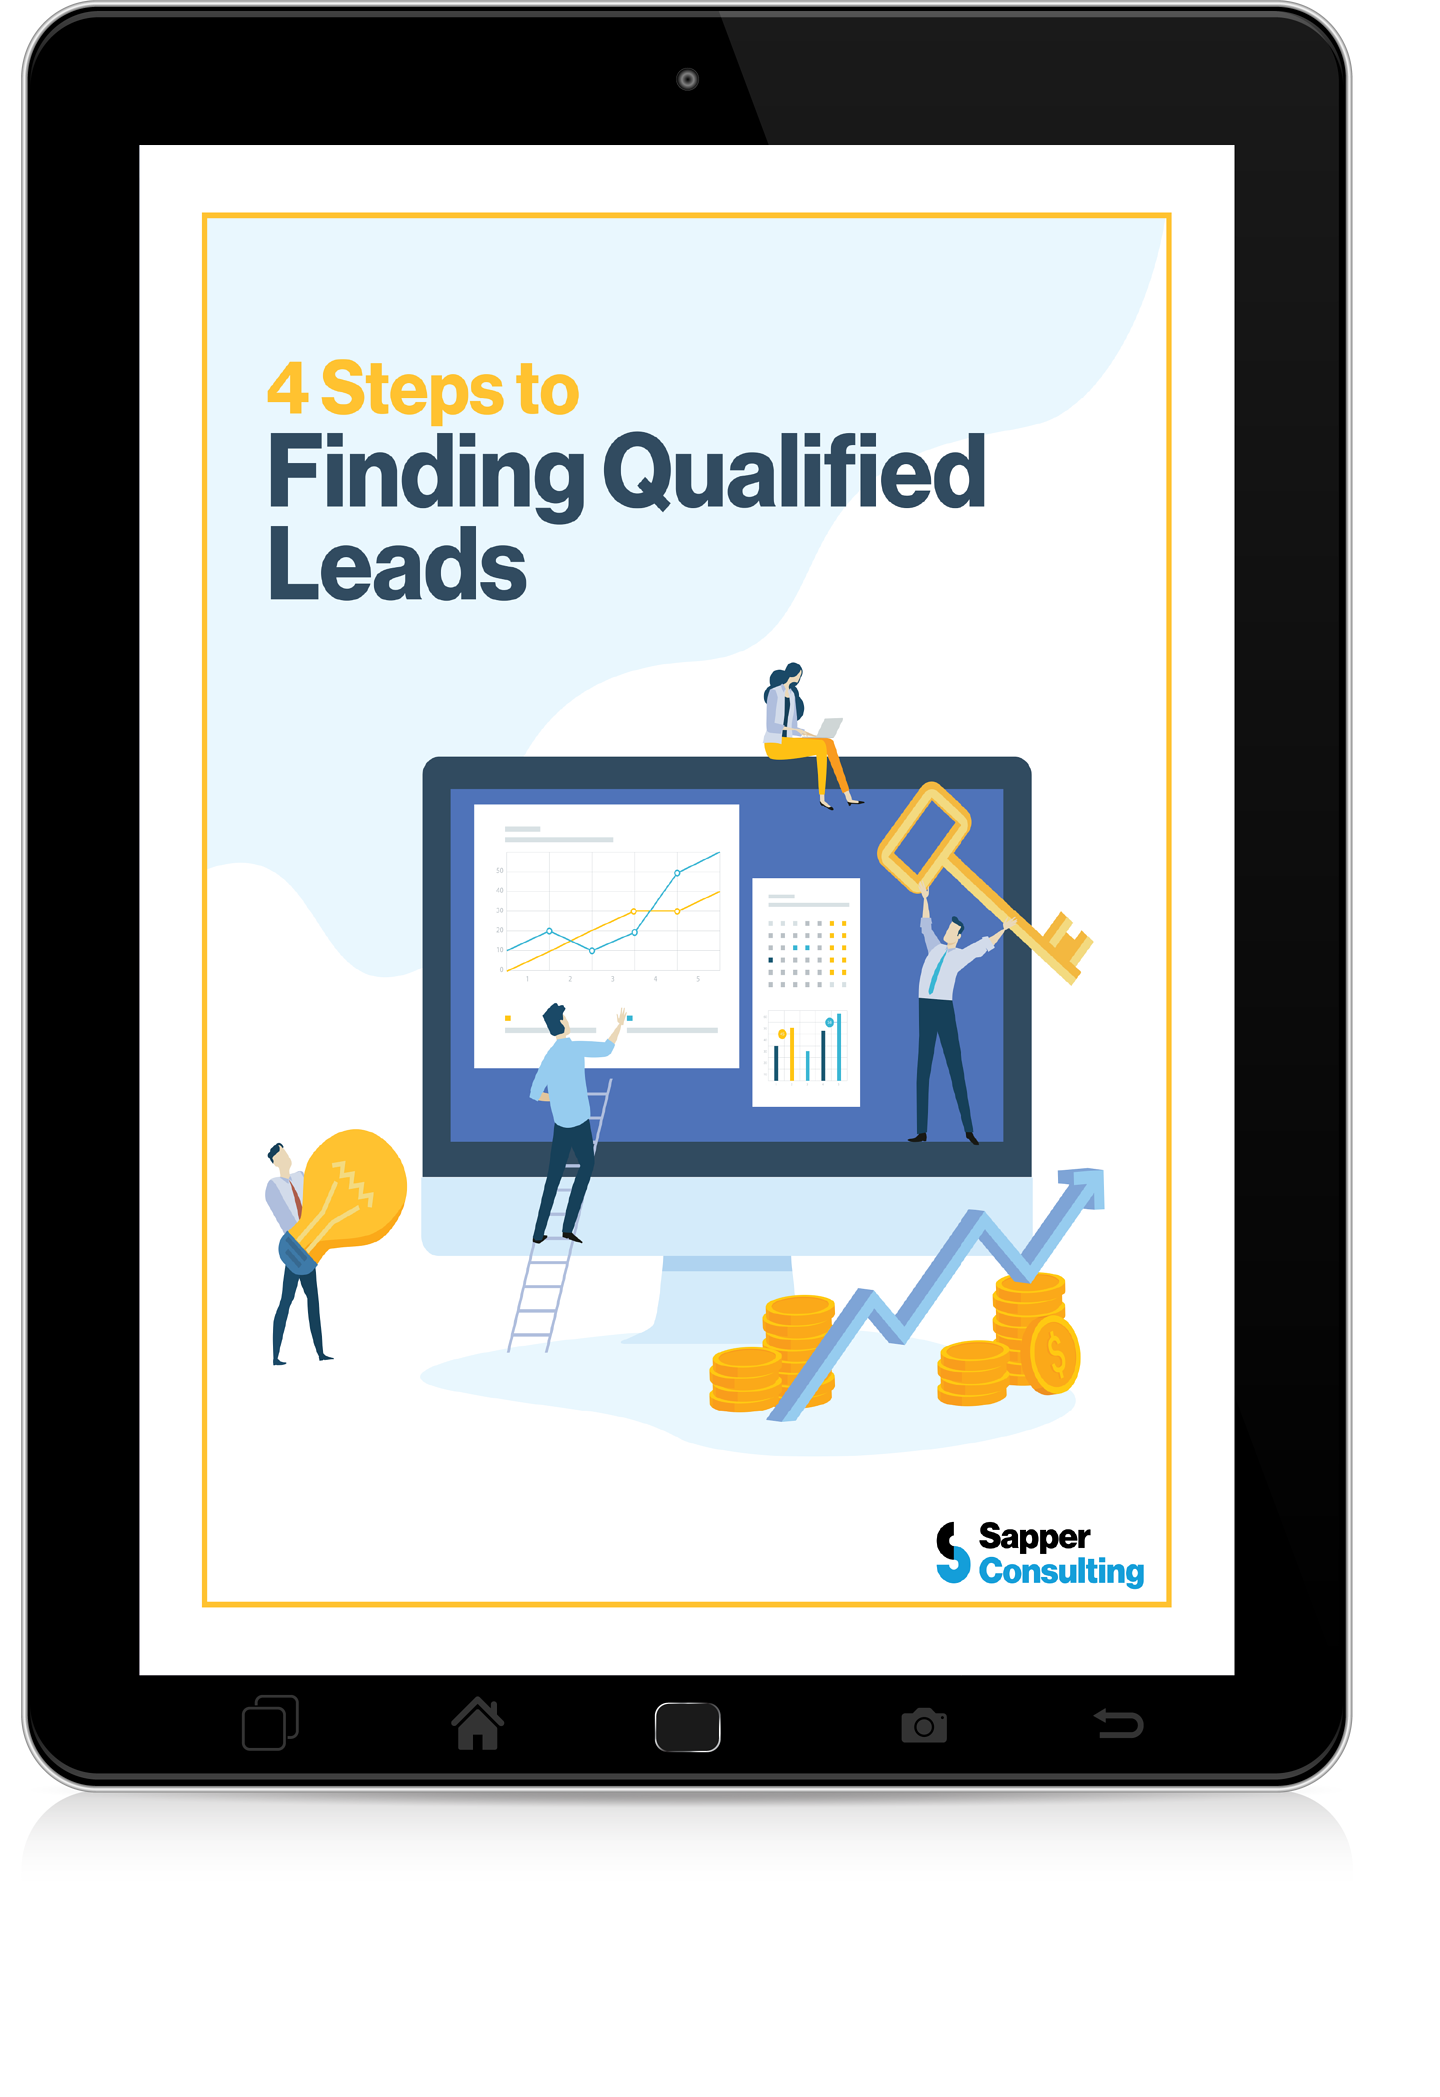 4 Steps to Finding Qualified Leads